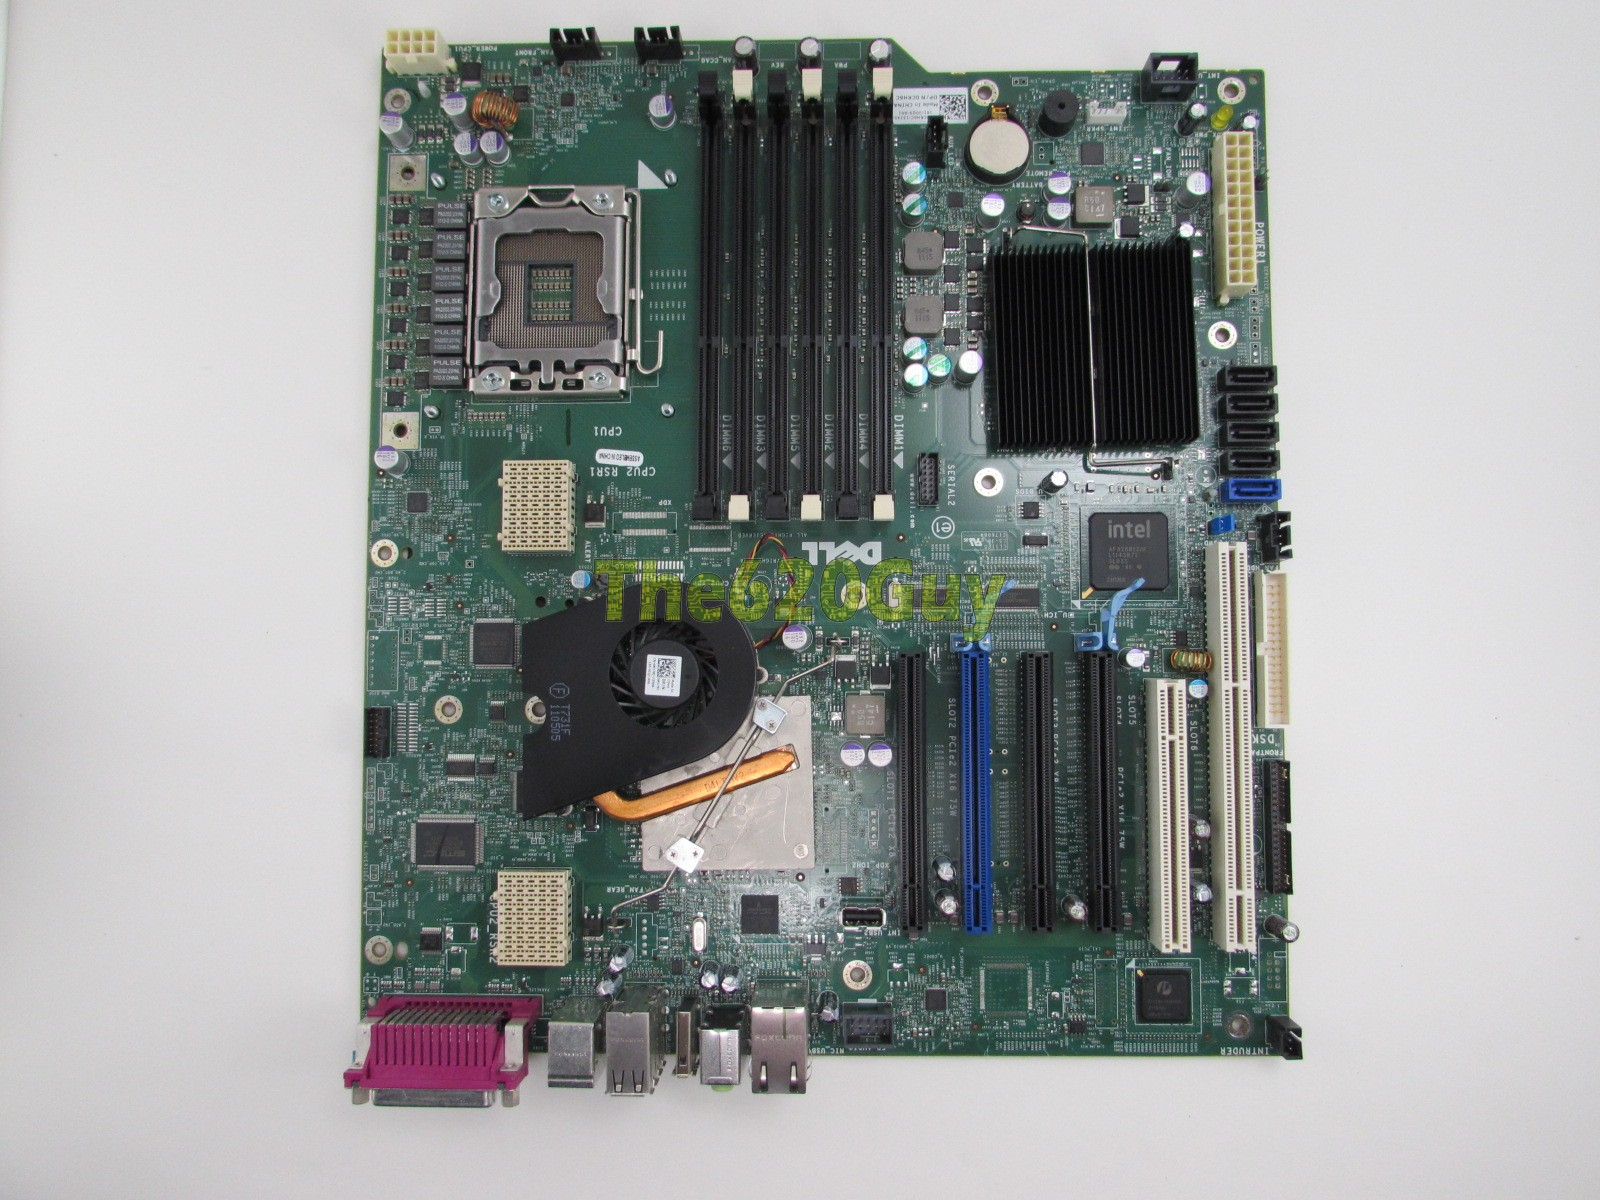 Inspiron 620 expansion slots